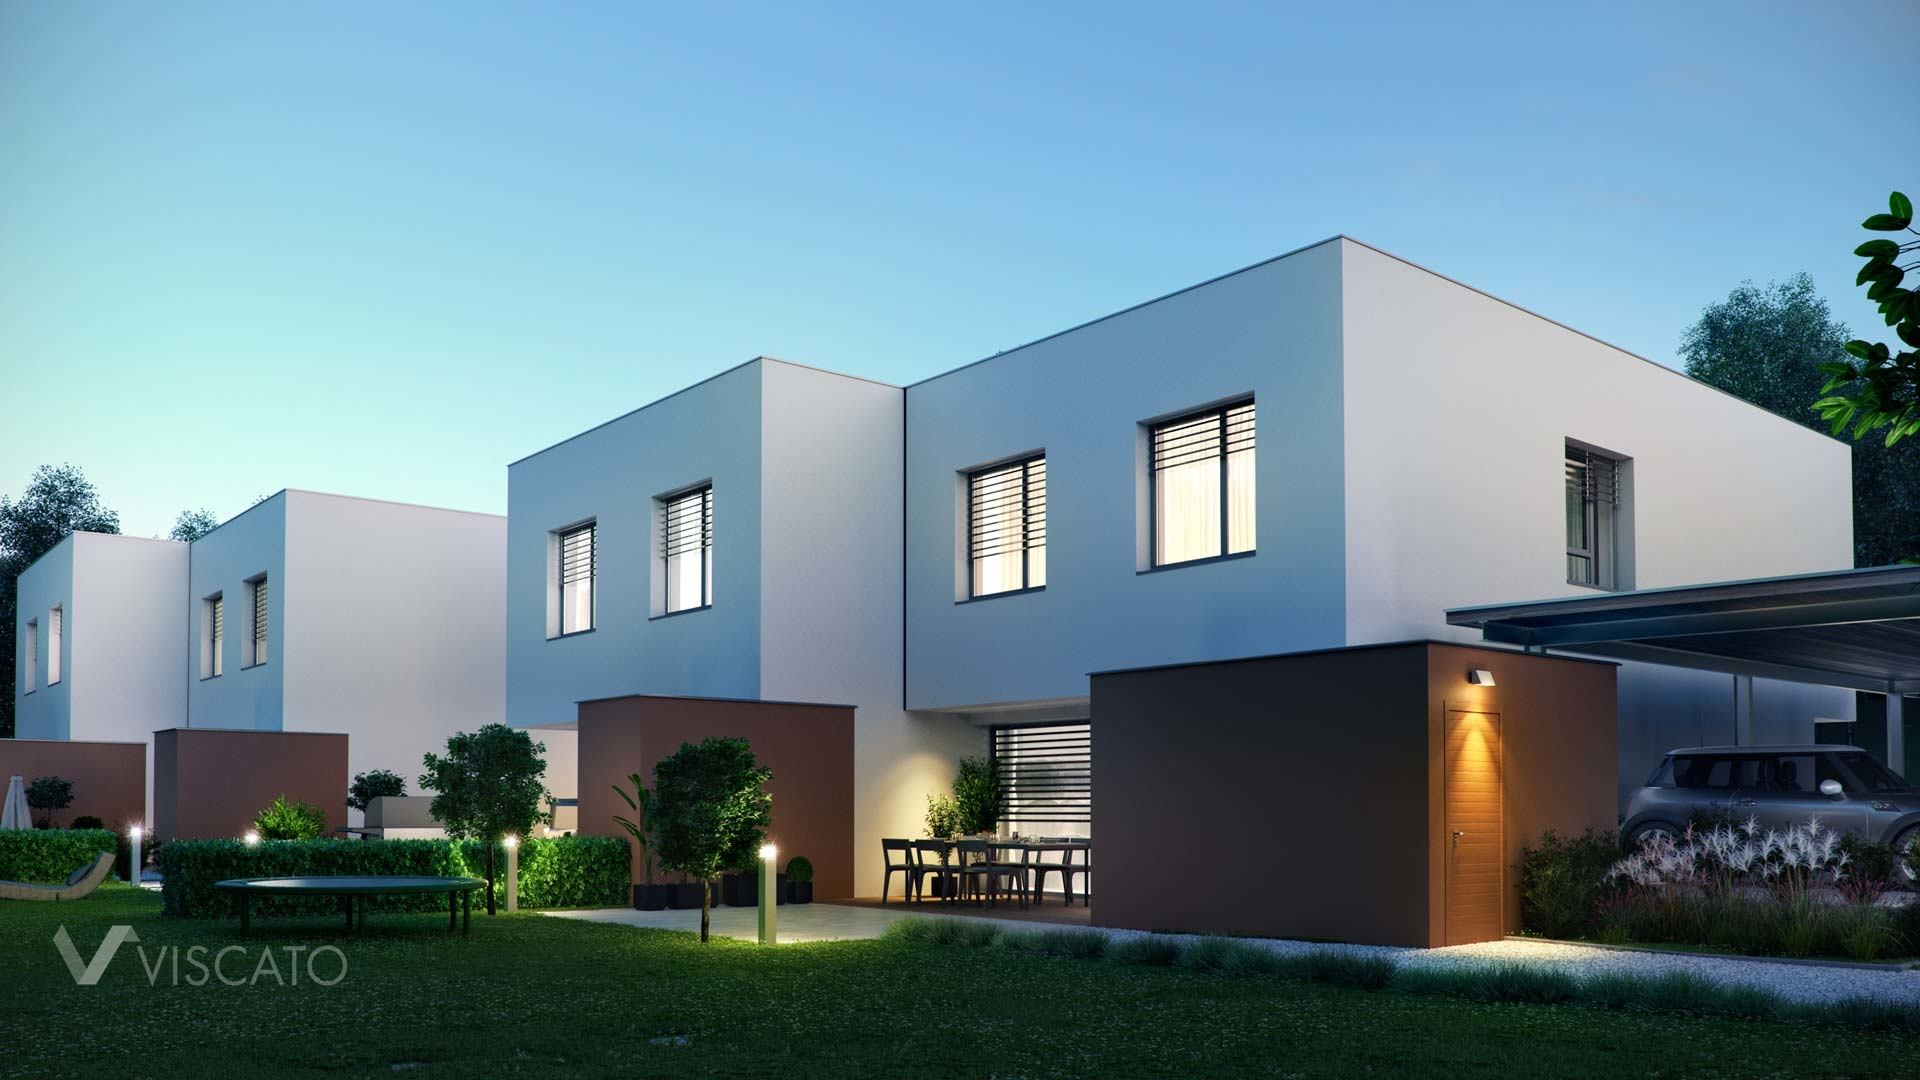 3d architectural visualization of a house- night view